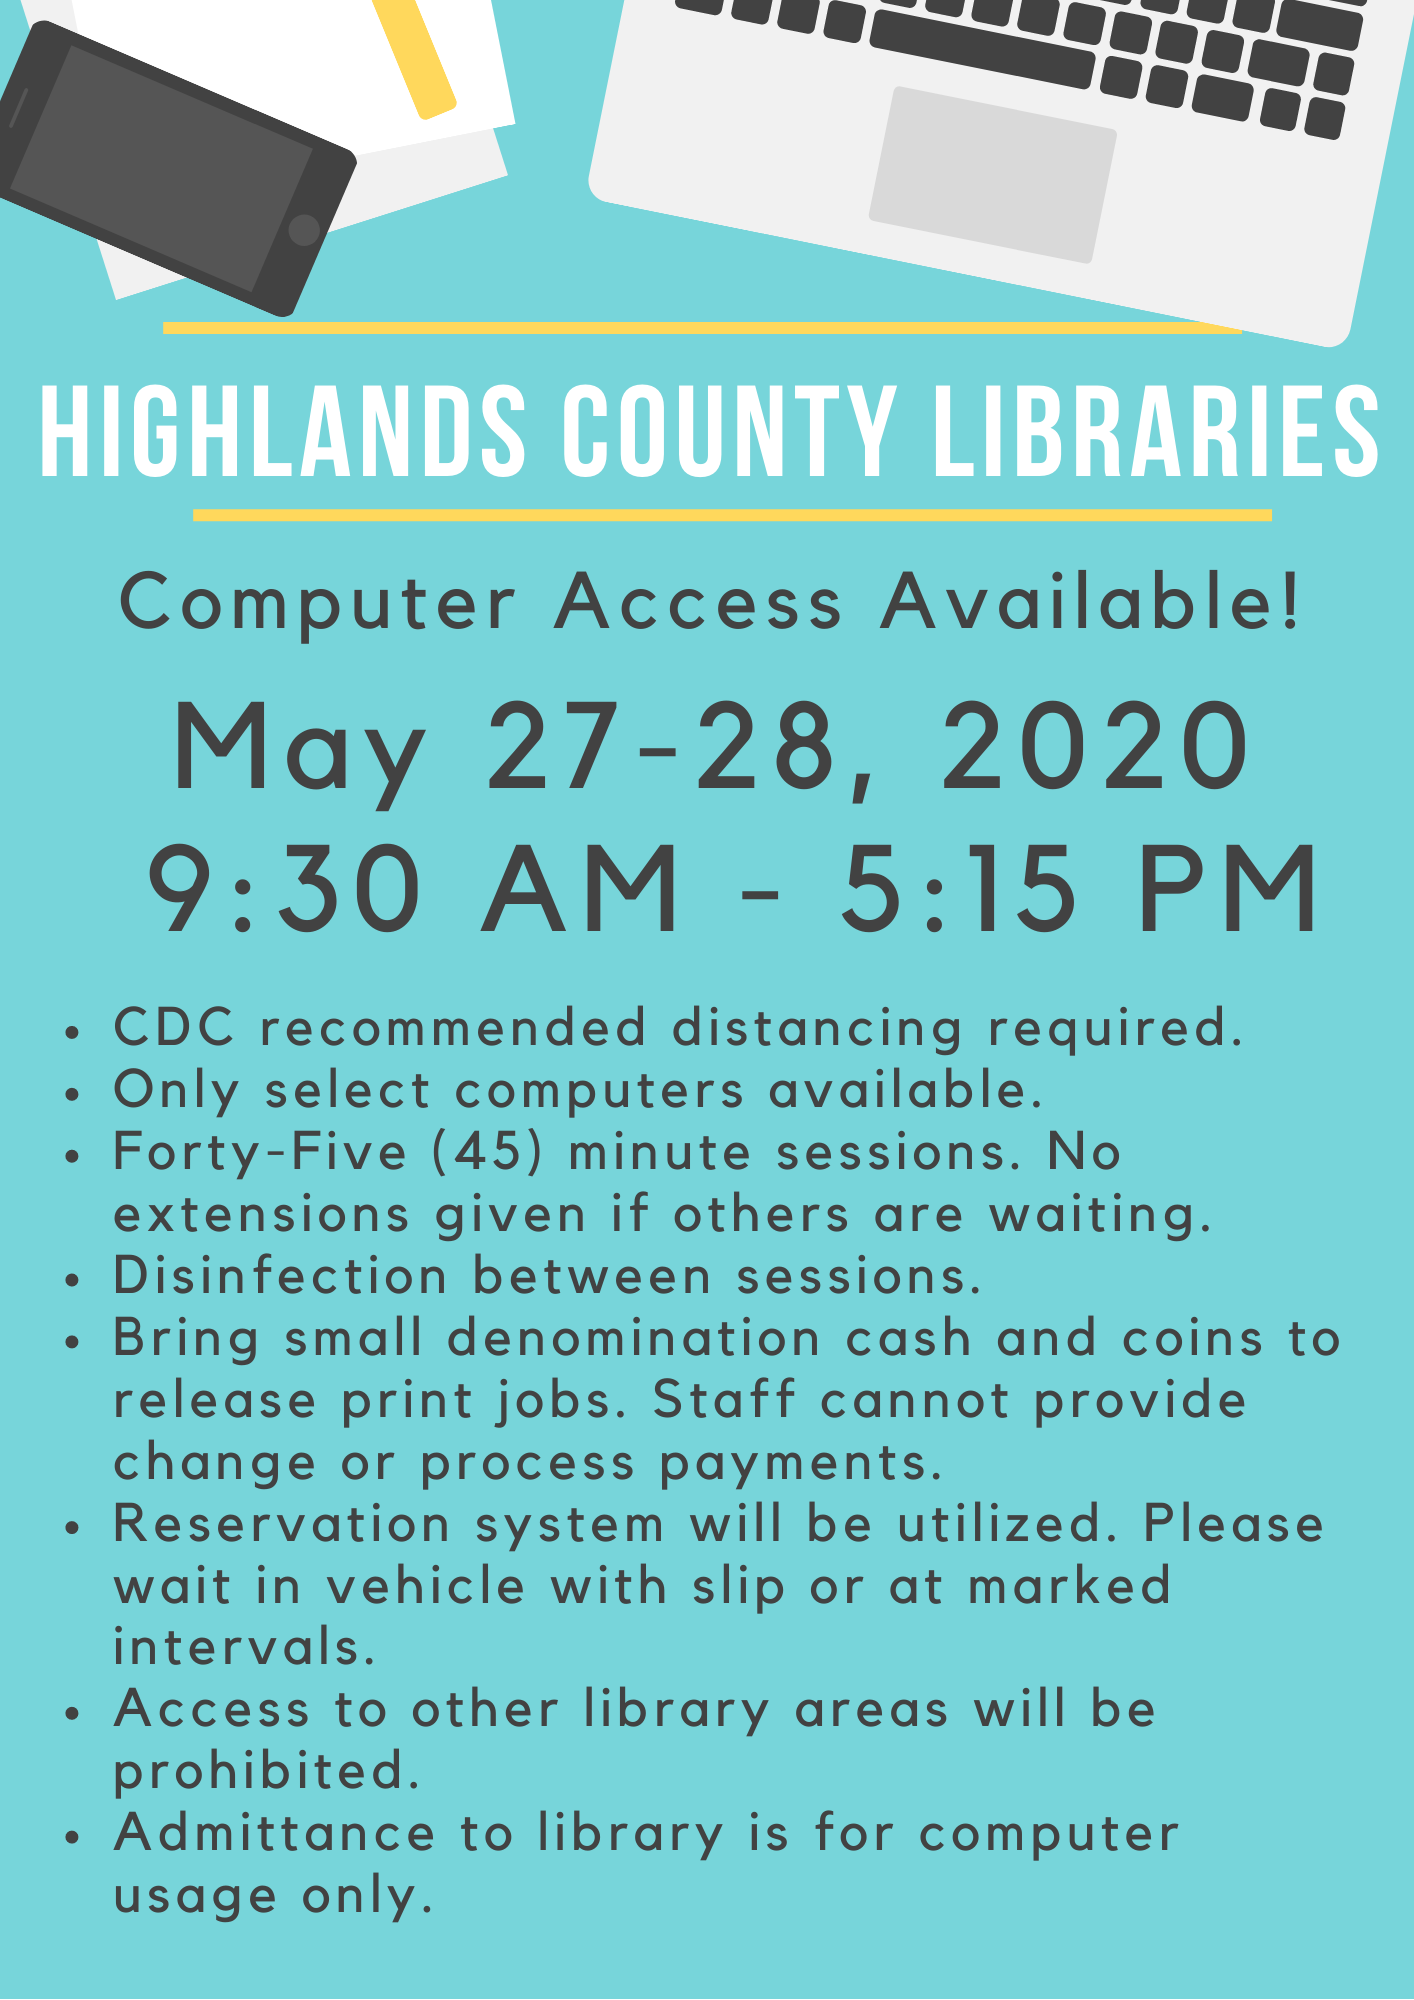 Highlands County Public Libraries will be offering computer usage on May 27-28, 2020 from 1:00 PM to 5:15 PM. Computers will automatically log off at 5:15 PM. Sessions will be limited to 45 minutes. Social distancing lines will be marked on the sidewalk if you choose to wait there, and if not please wait in your vehicle with a reservation slip. All other areas of the libraries will be closed and not available for use or access. Computer service available at Avon Park, Sebring, and Lake Placid Libraries. Please call 863-402-6716 for questions or assistance.